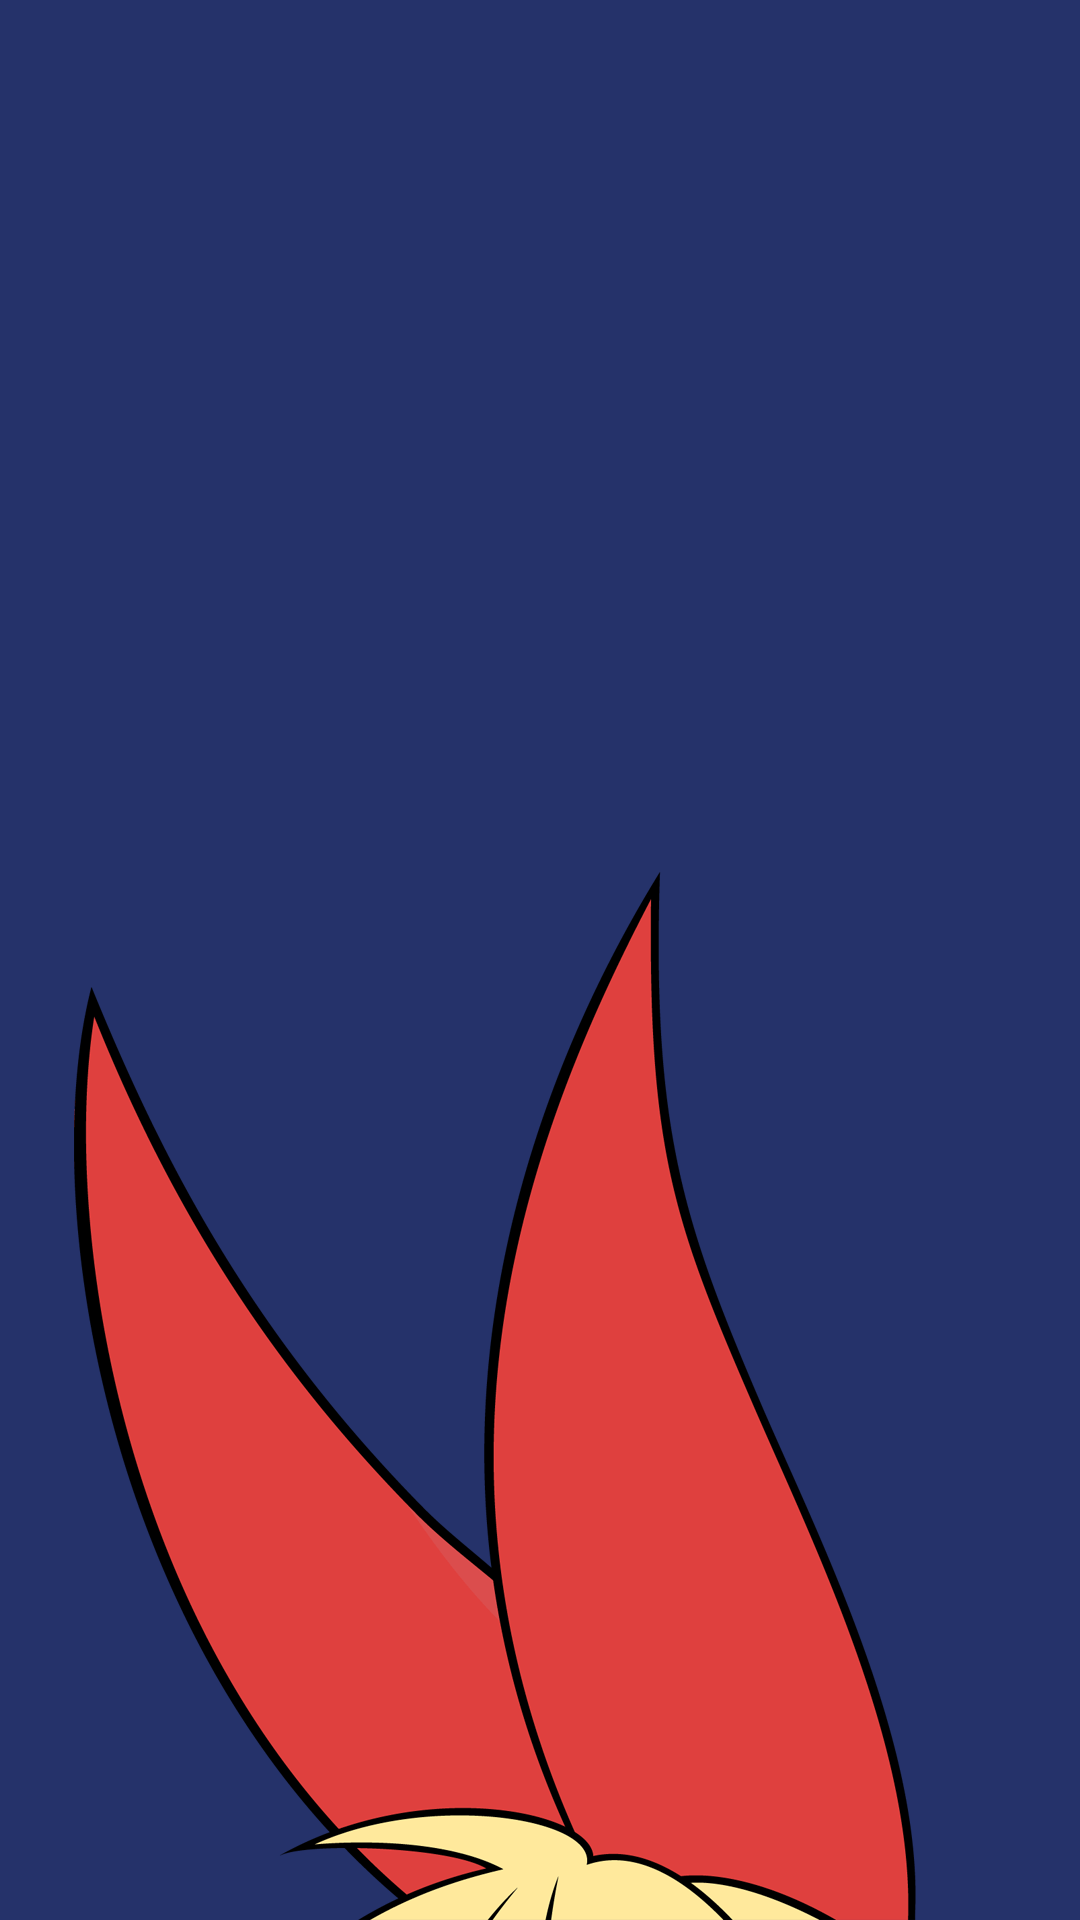 Minimalistic Anime Phone Wallpapers - Wallpaper Cave